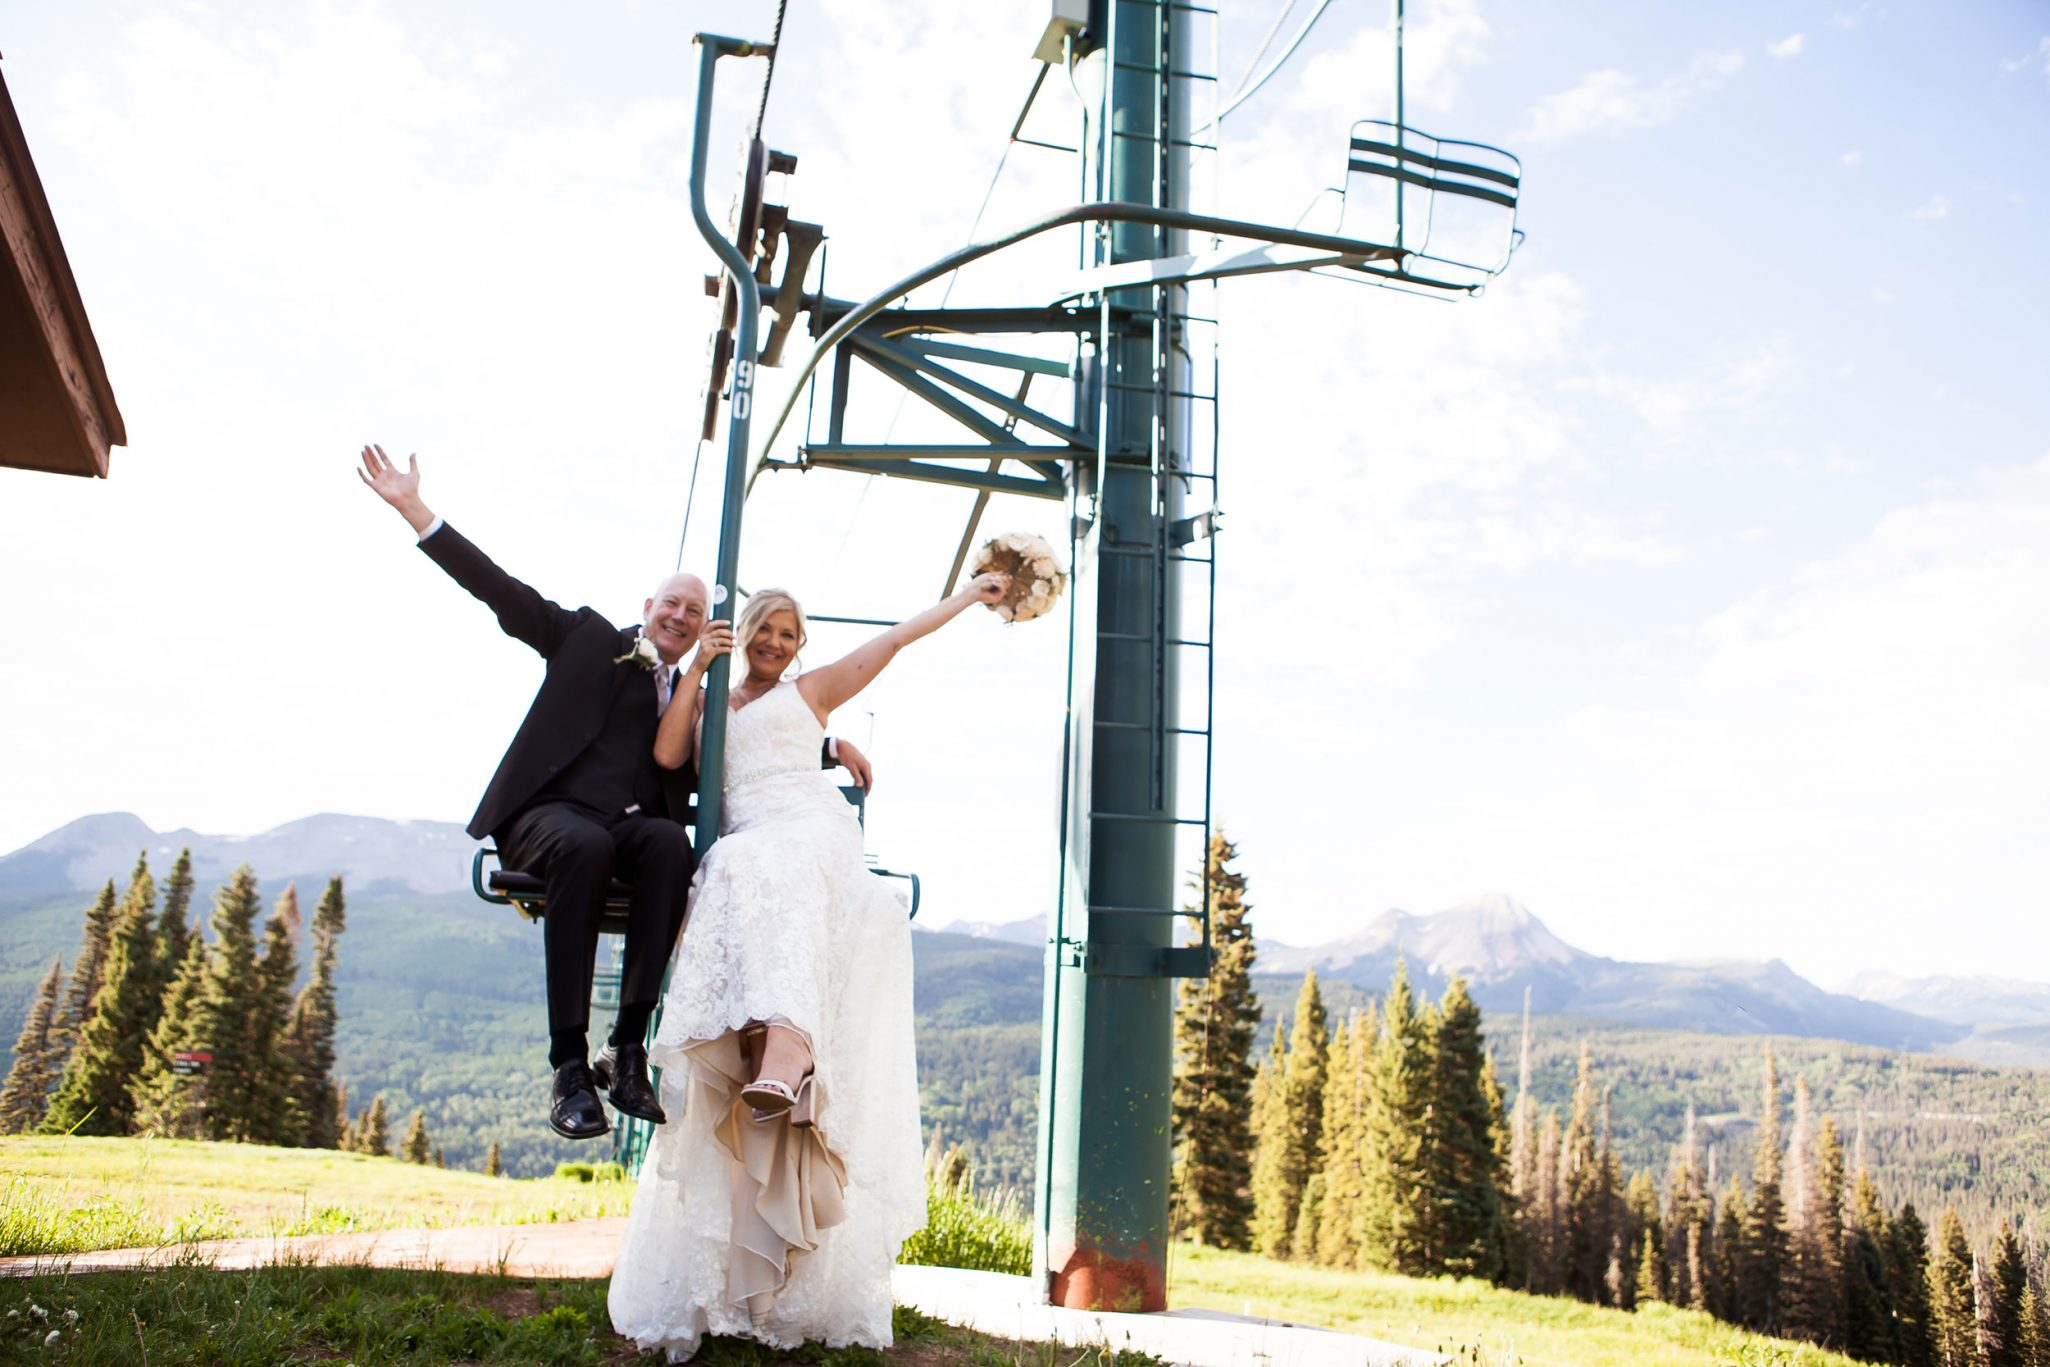 Bride & Groom on the chairlift at Purgatory Resort, Durango CO